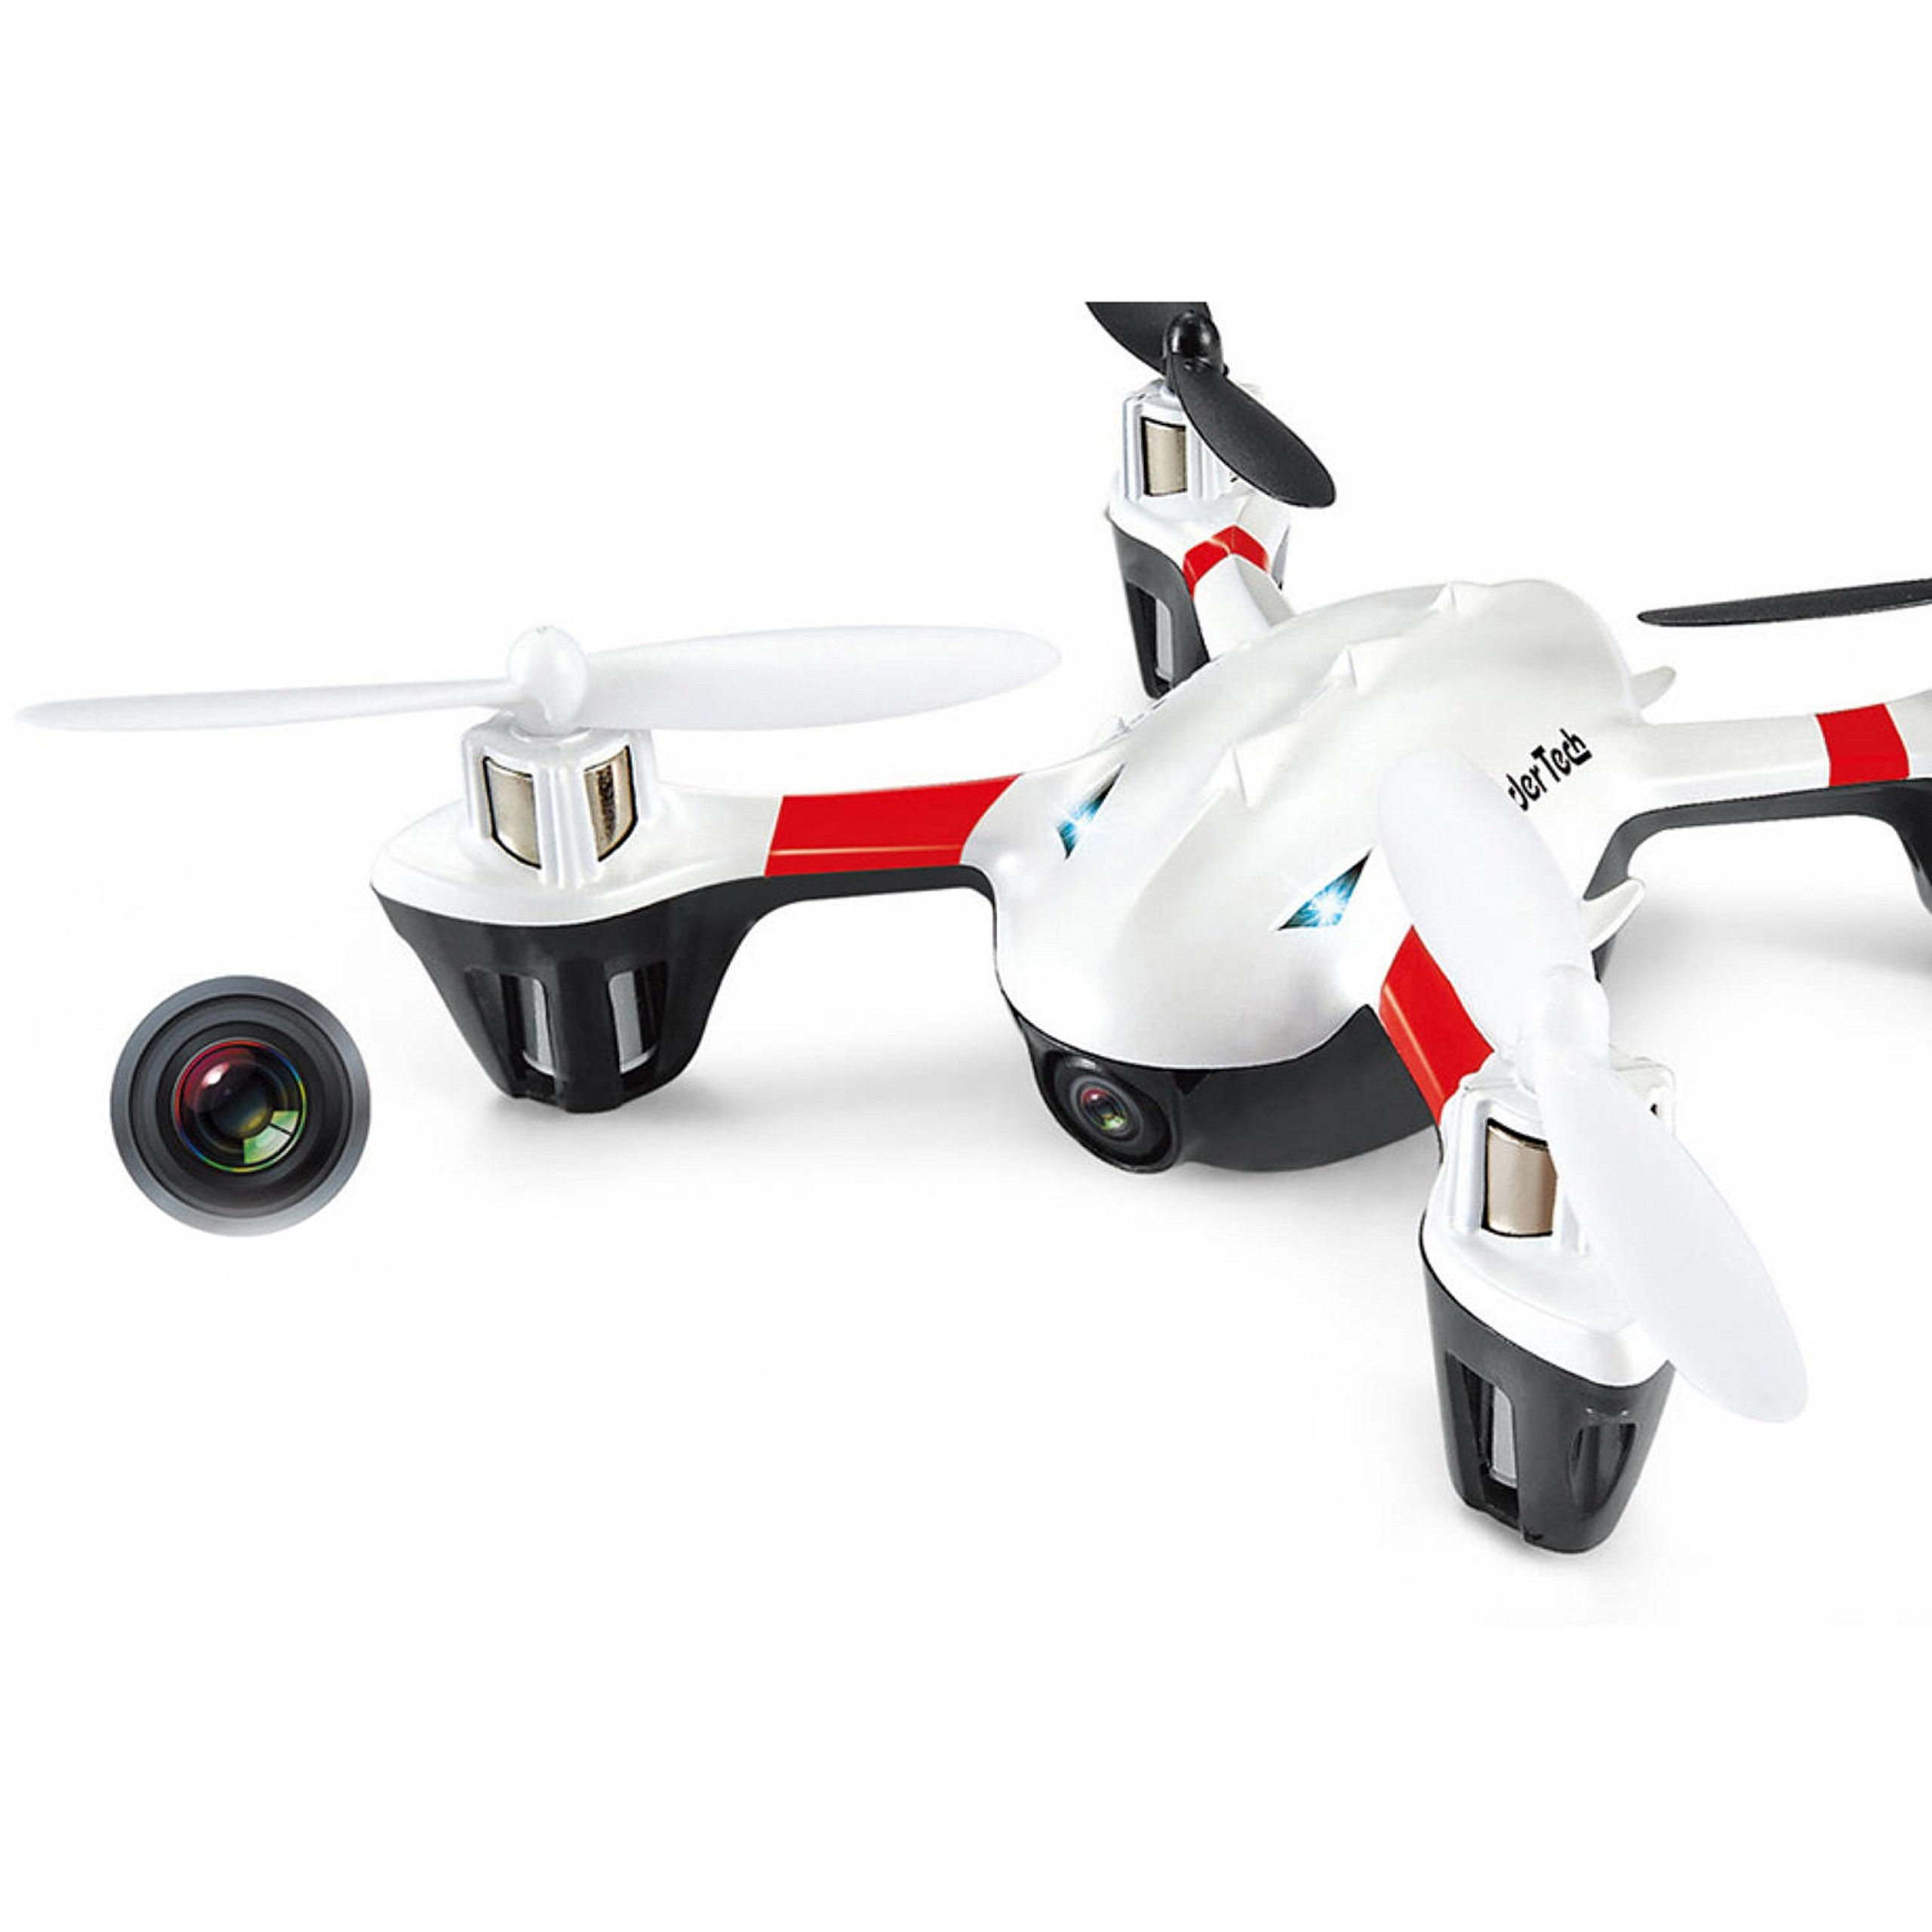 5-Channel 2.4GHz Remote Control 6-Axis Gyro Quadcopter Flying Drone by WonderTech